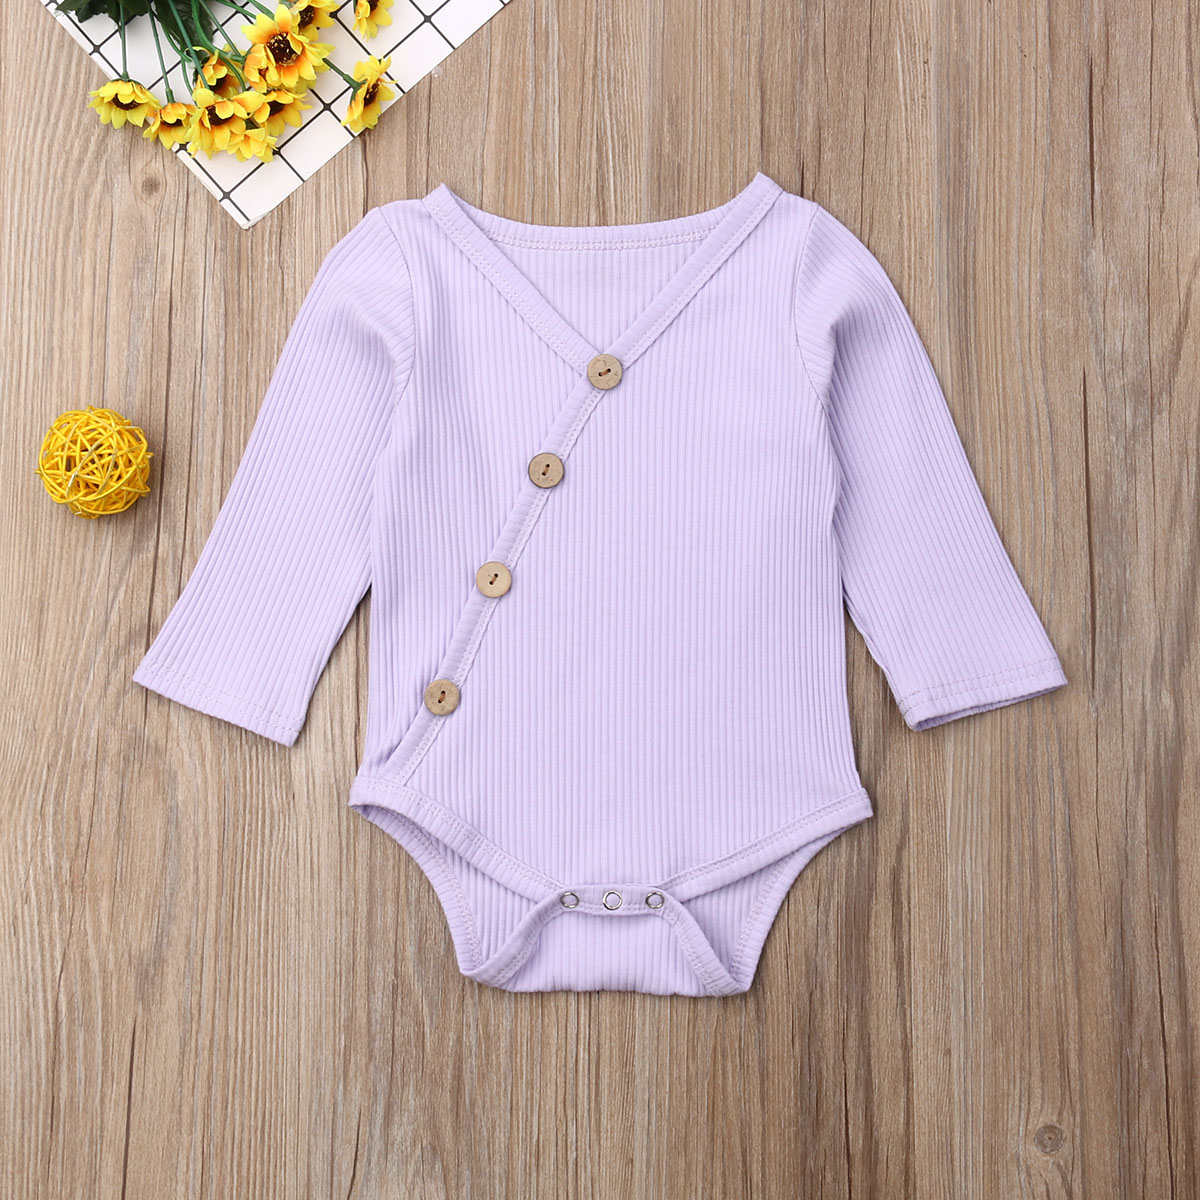 0-24M Newborn Infant Baby Boy Girl Rompers Button Kid Jumpsuit Clothes Bodysuit